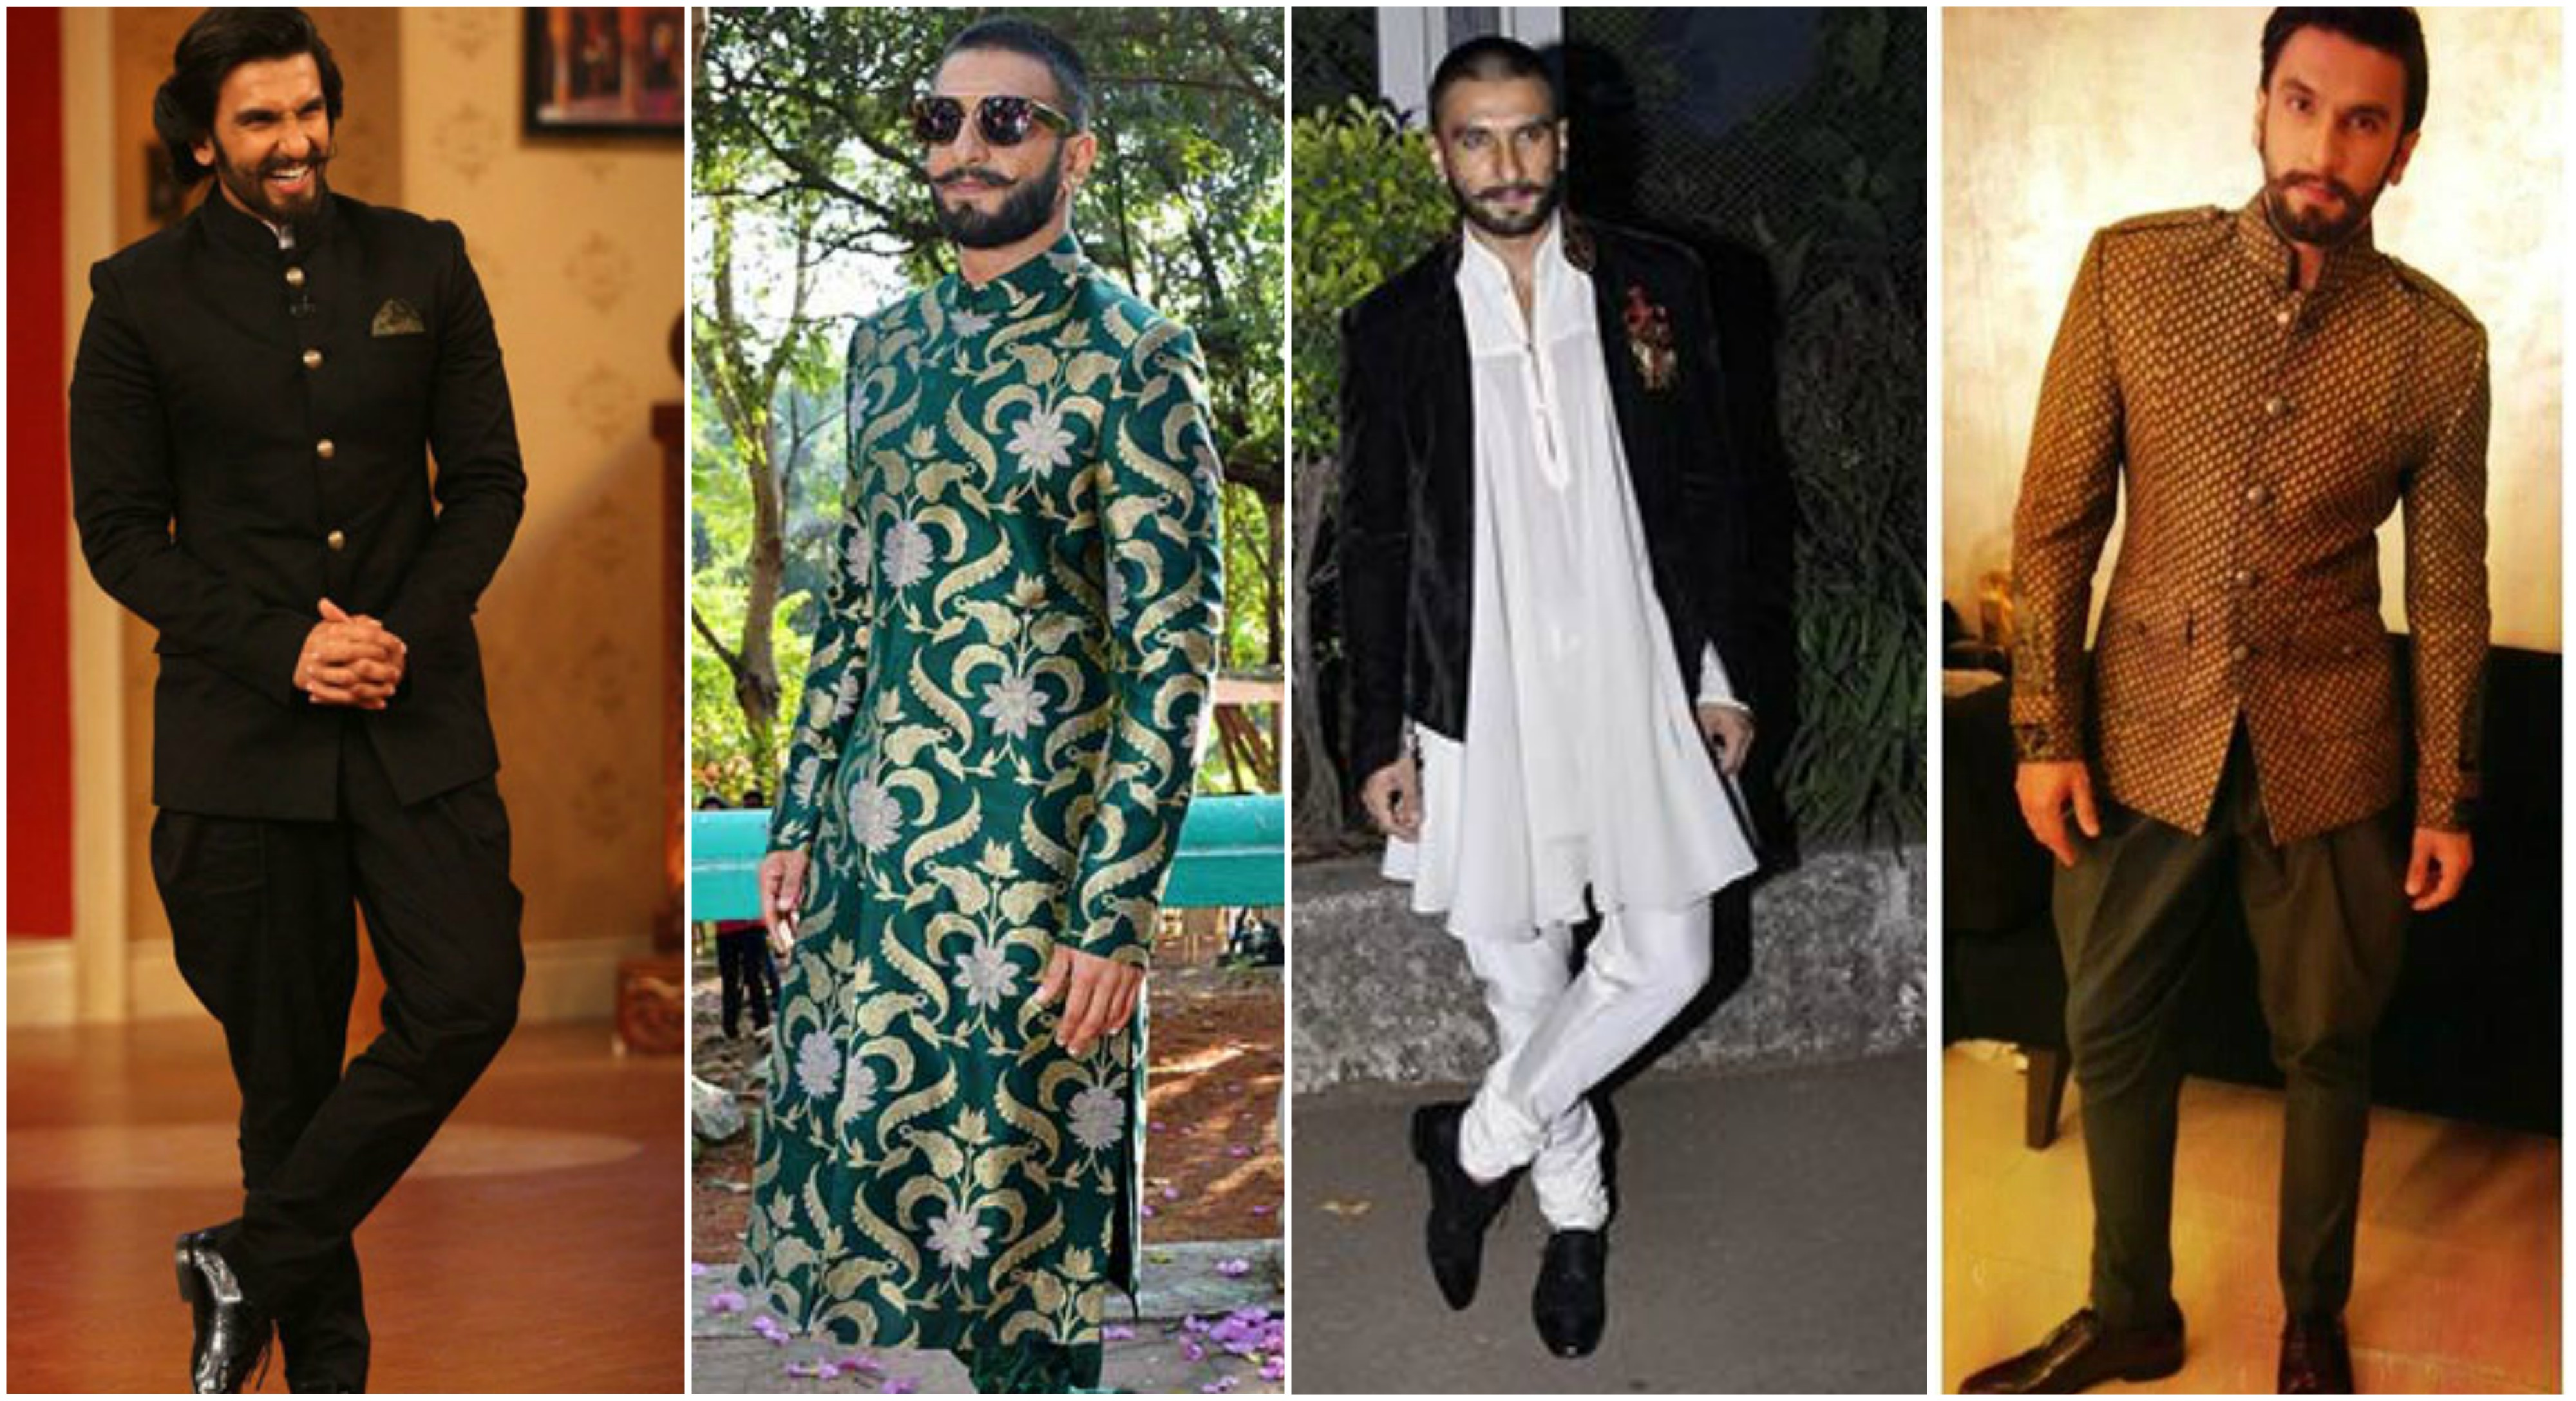 Decoding the latest Bollywood trend in ethnic wear (men)!